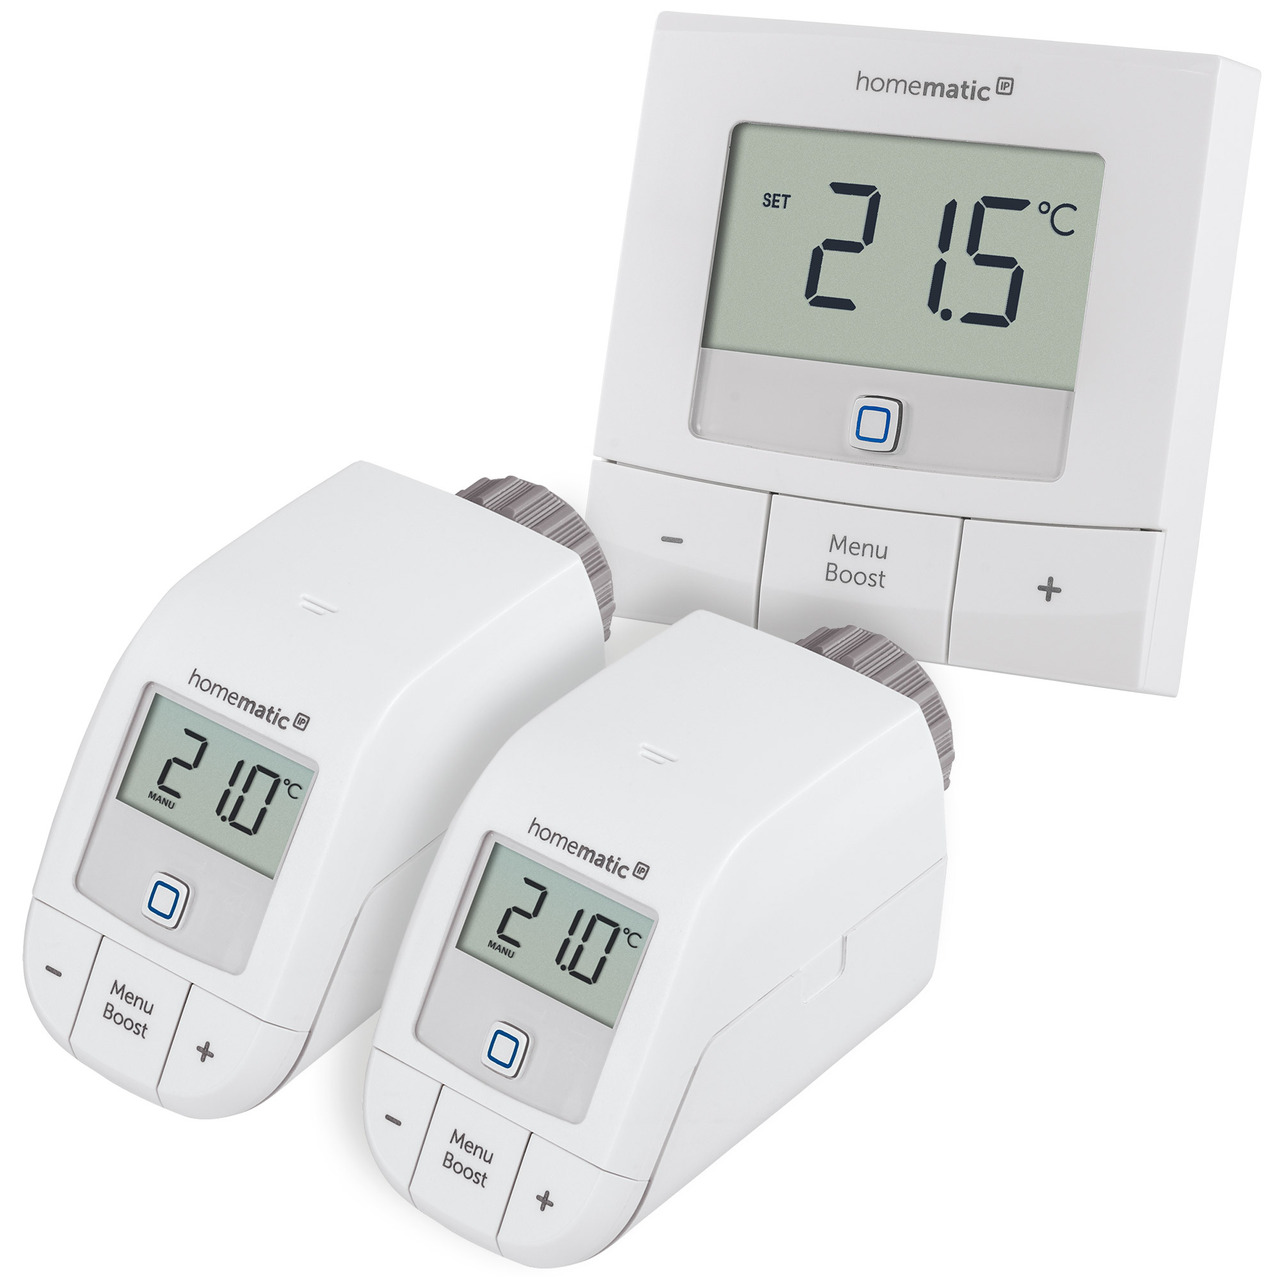 Homematic IP Smart Home Set Heizen Basic XS mit 2x Heizkörperthermostat und 1x Wandthermostat